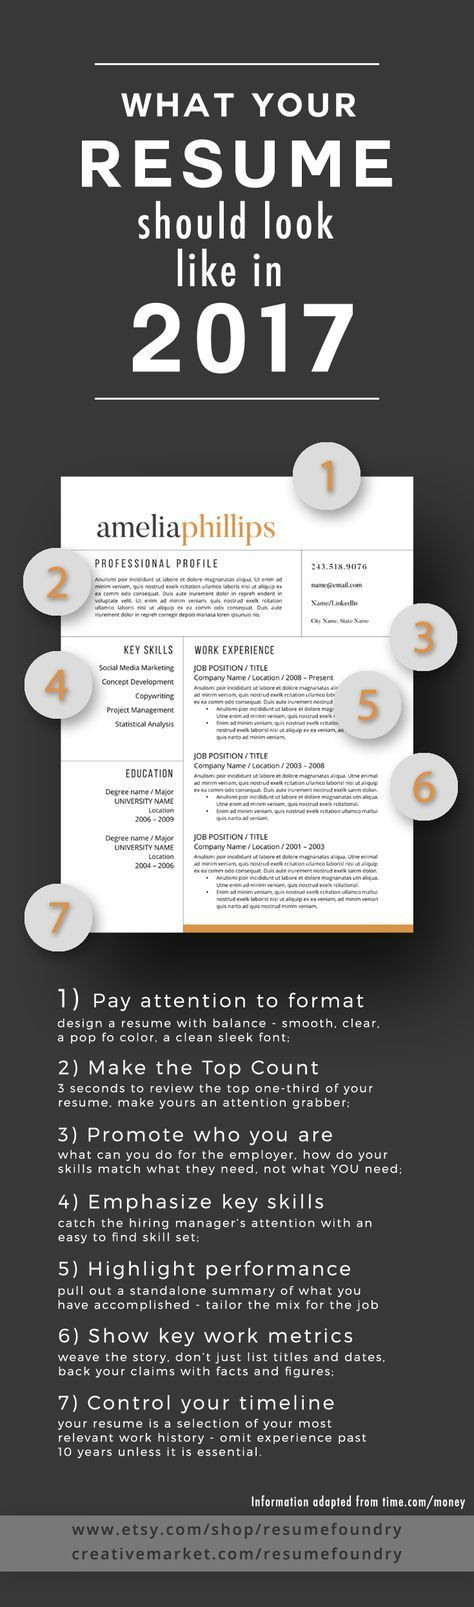 7 tips to transform your resume to